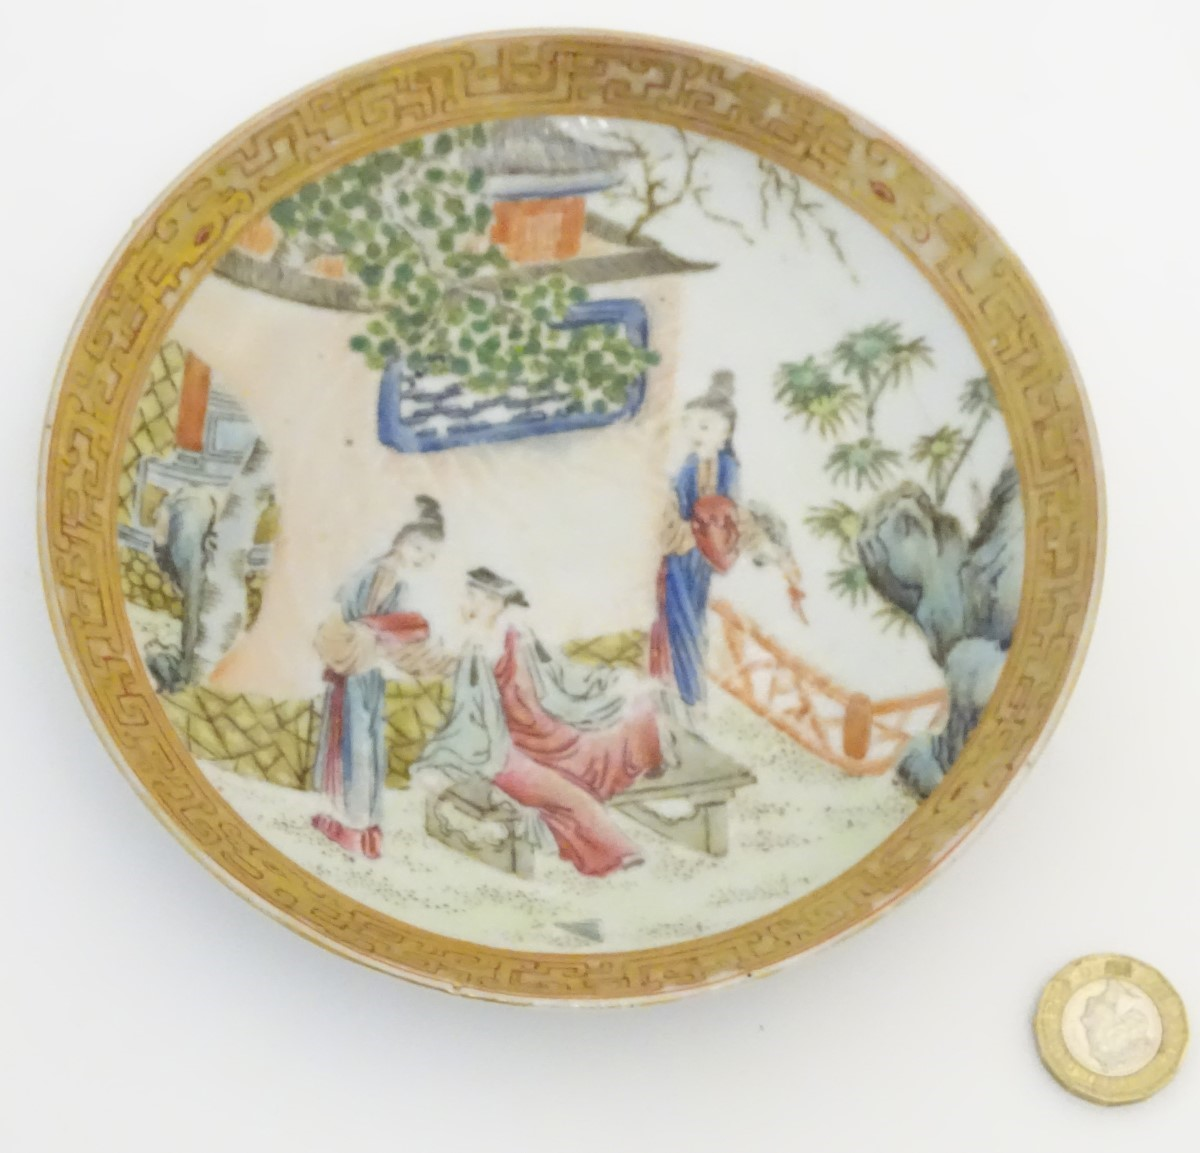 Lot 20 - A small Chinese famille rose plate decorated with figures on a terrace within a landscape with a